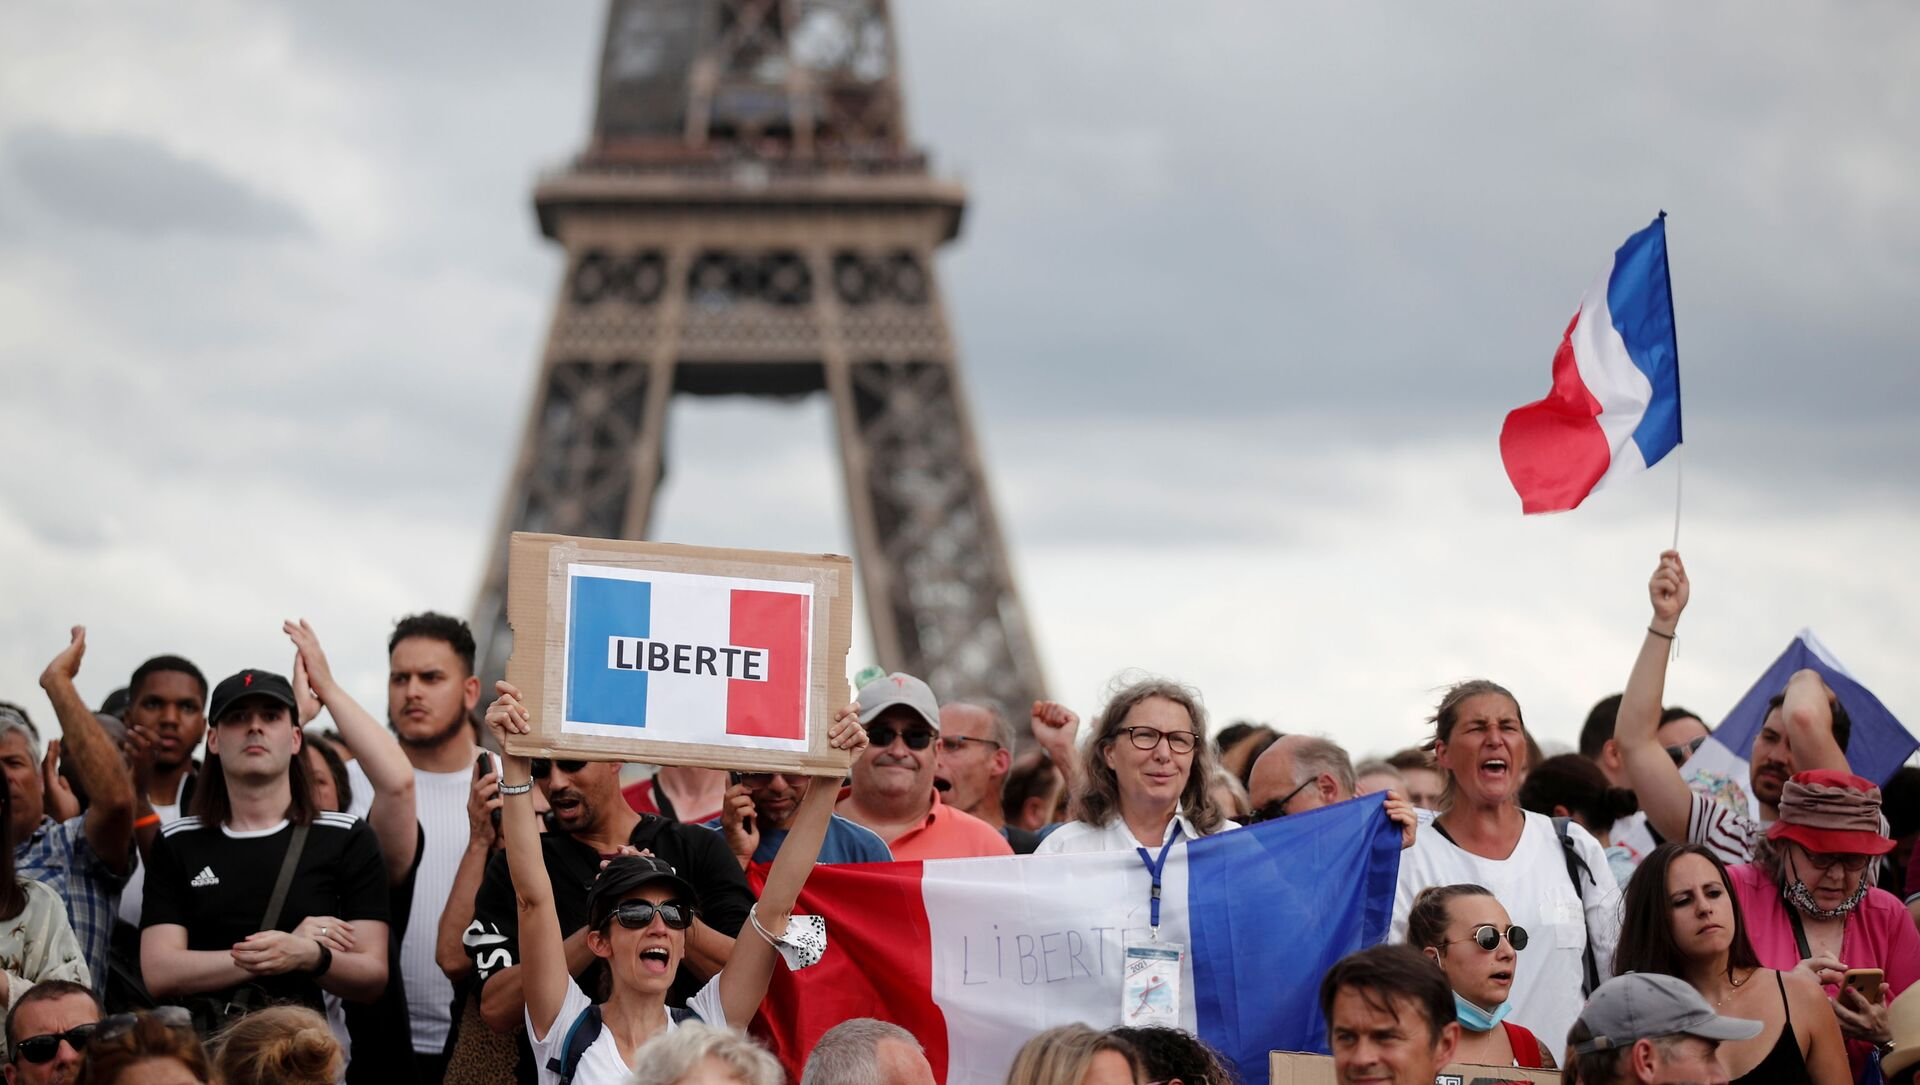 Protesters attend a demonstration called by the French nationalist party Les Patriotes (The Patriots) against France's restrictions to fight the coronavirus disease (COVID-19) outbreak, on the Droits de l'Homme (human rights) esplanade at the Trocadero Square in Paris, France, July 24, 2021. - Sputnik International, 1920, 25.07.2021